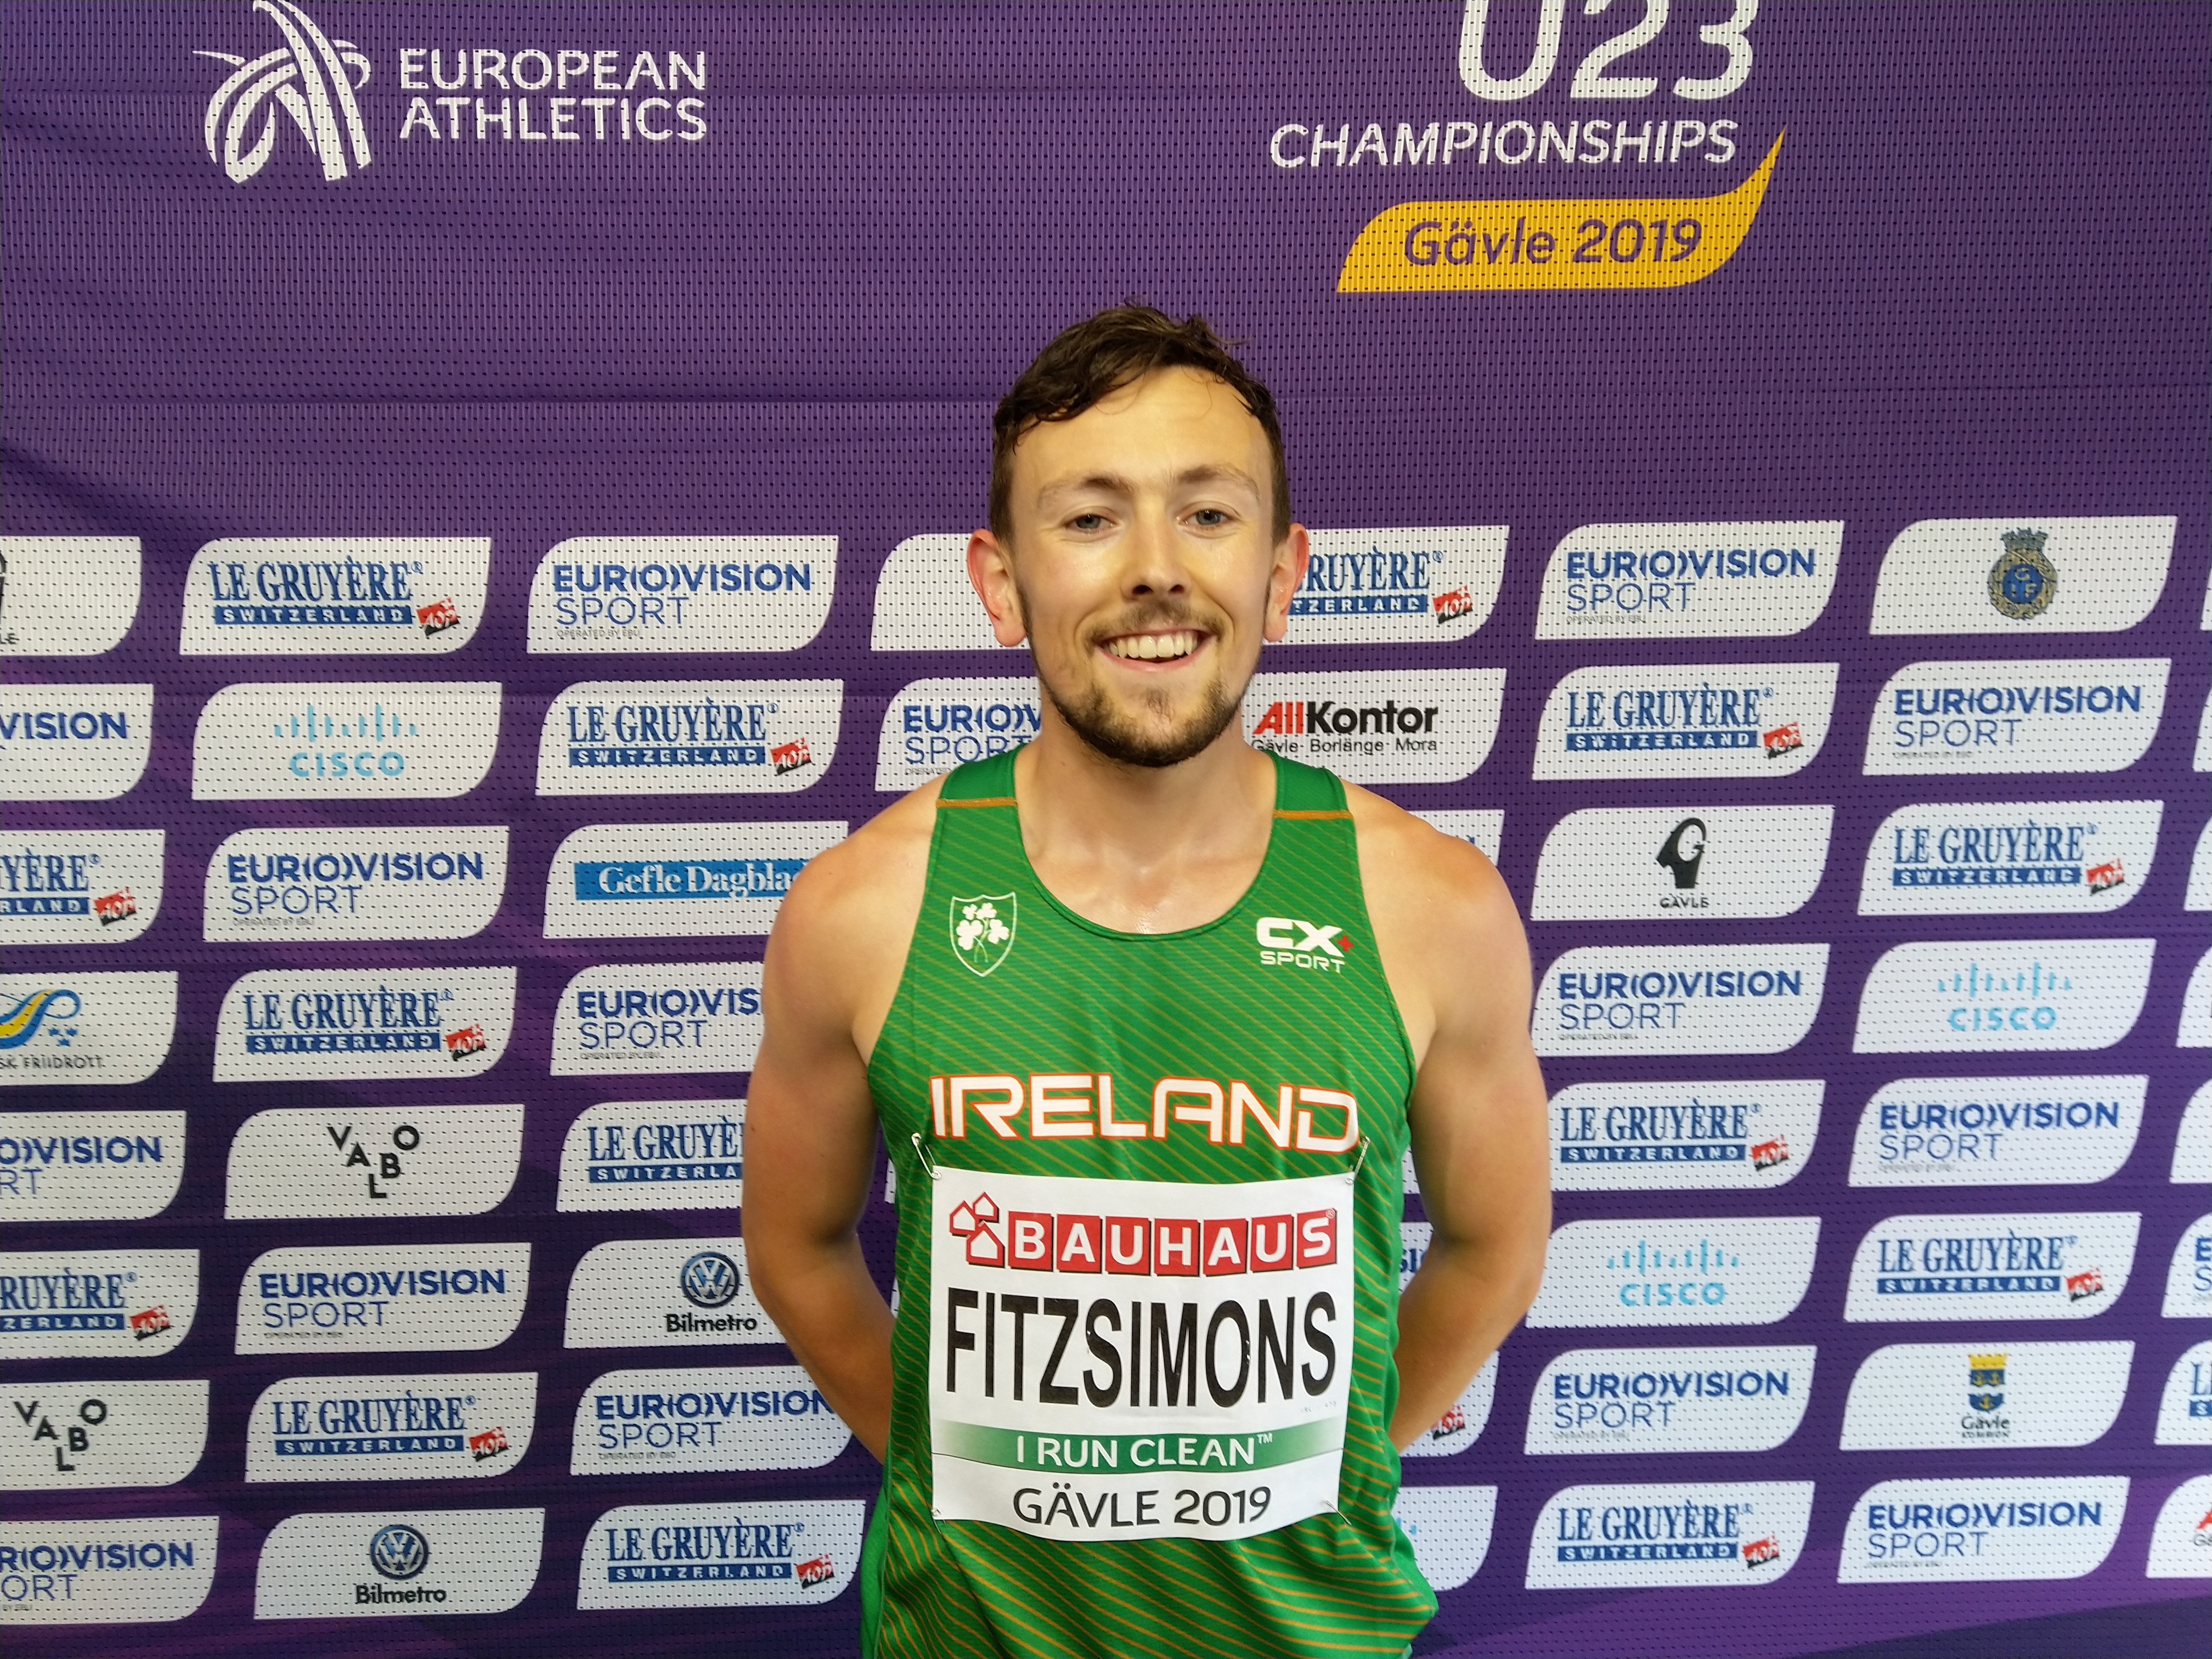 Fitzsimons and Cotter make their mark